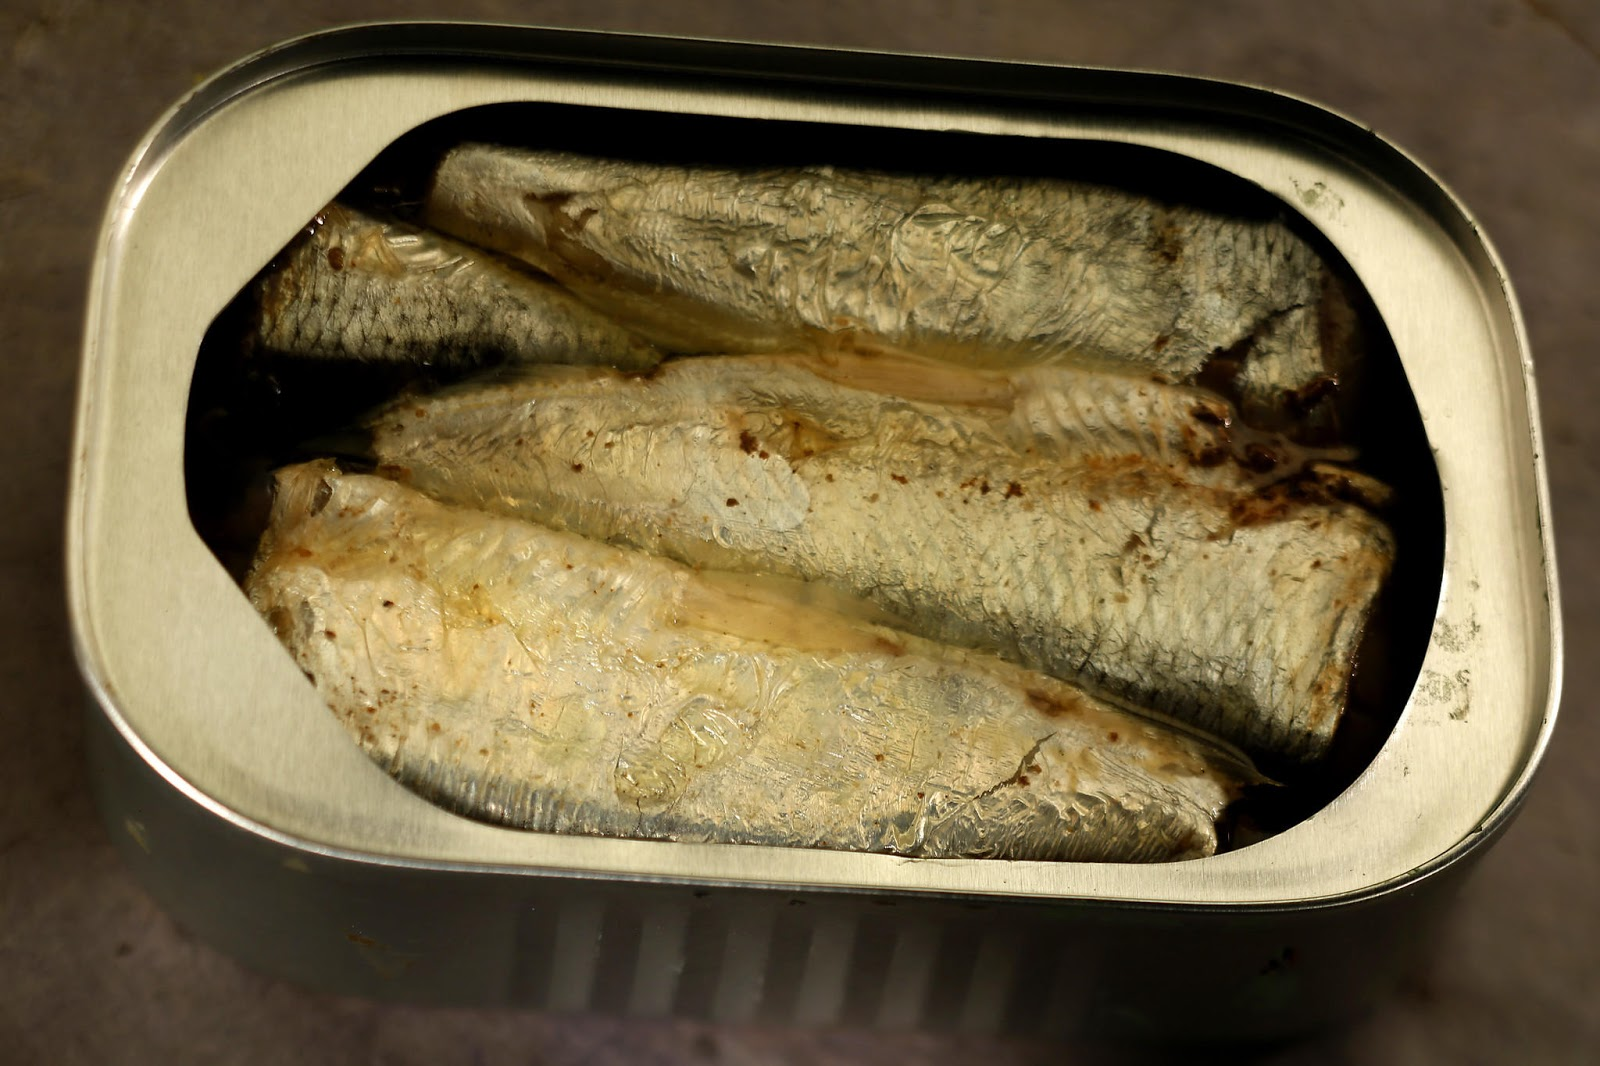 How To Buy The Best Sardines Canned Fish Product?